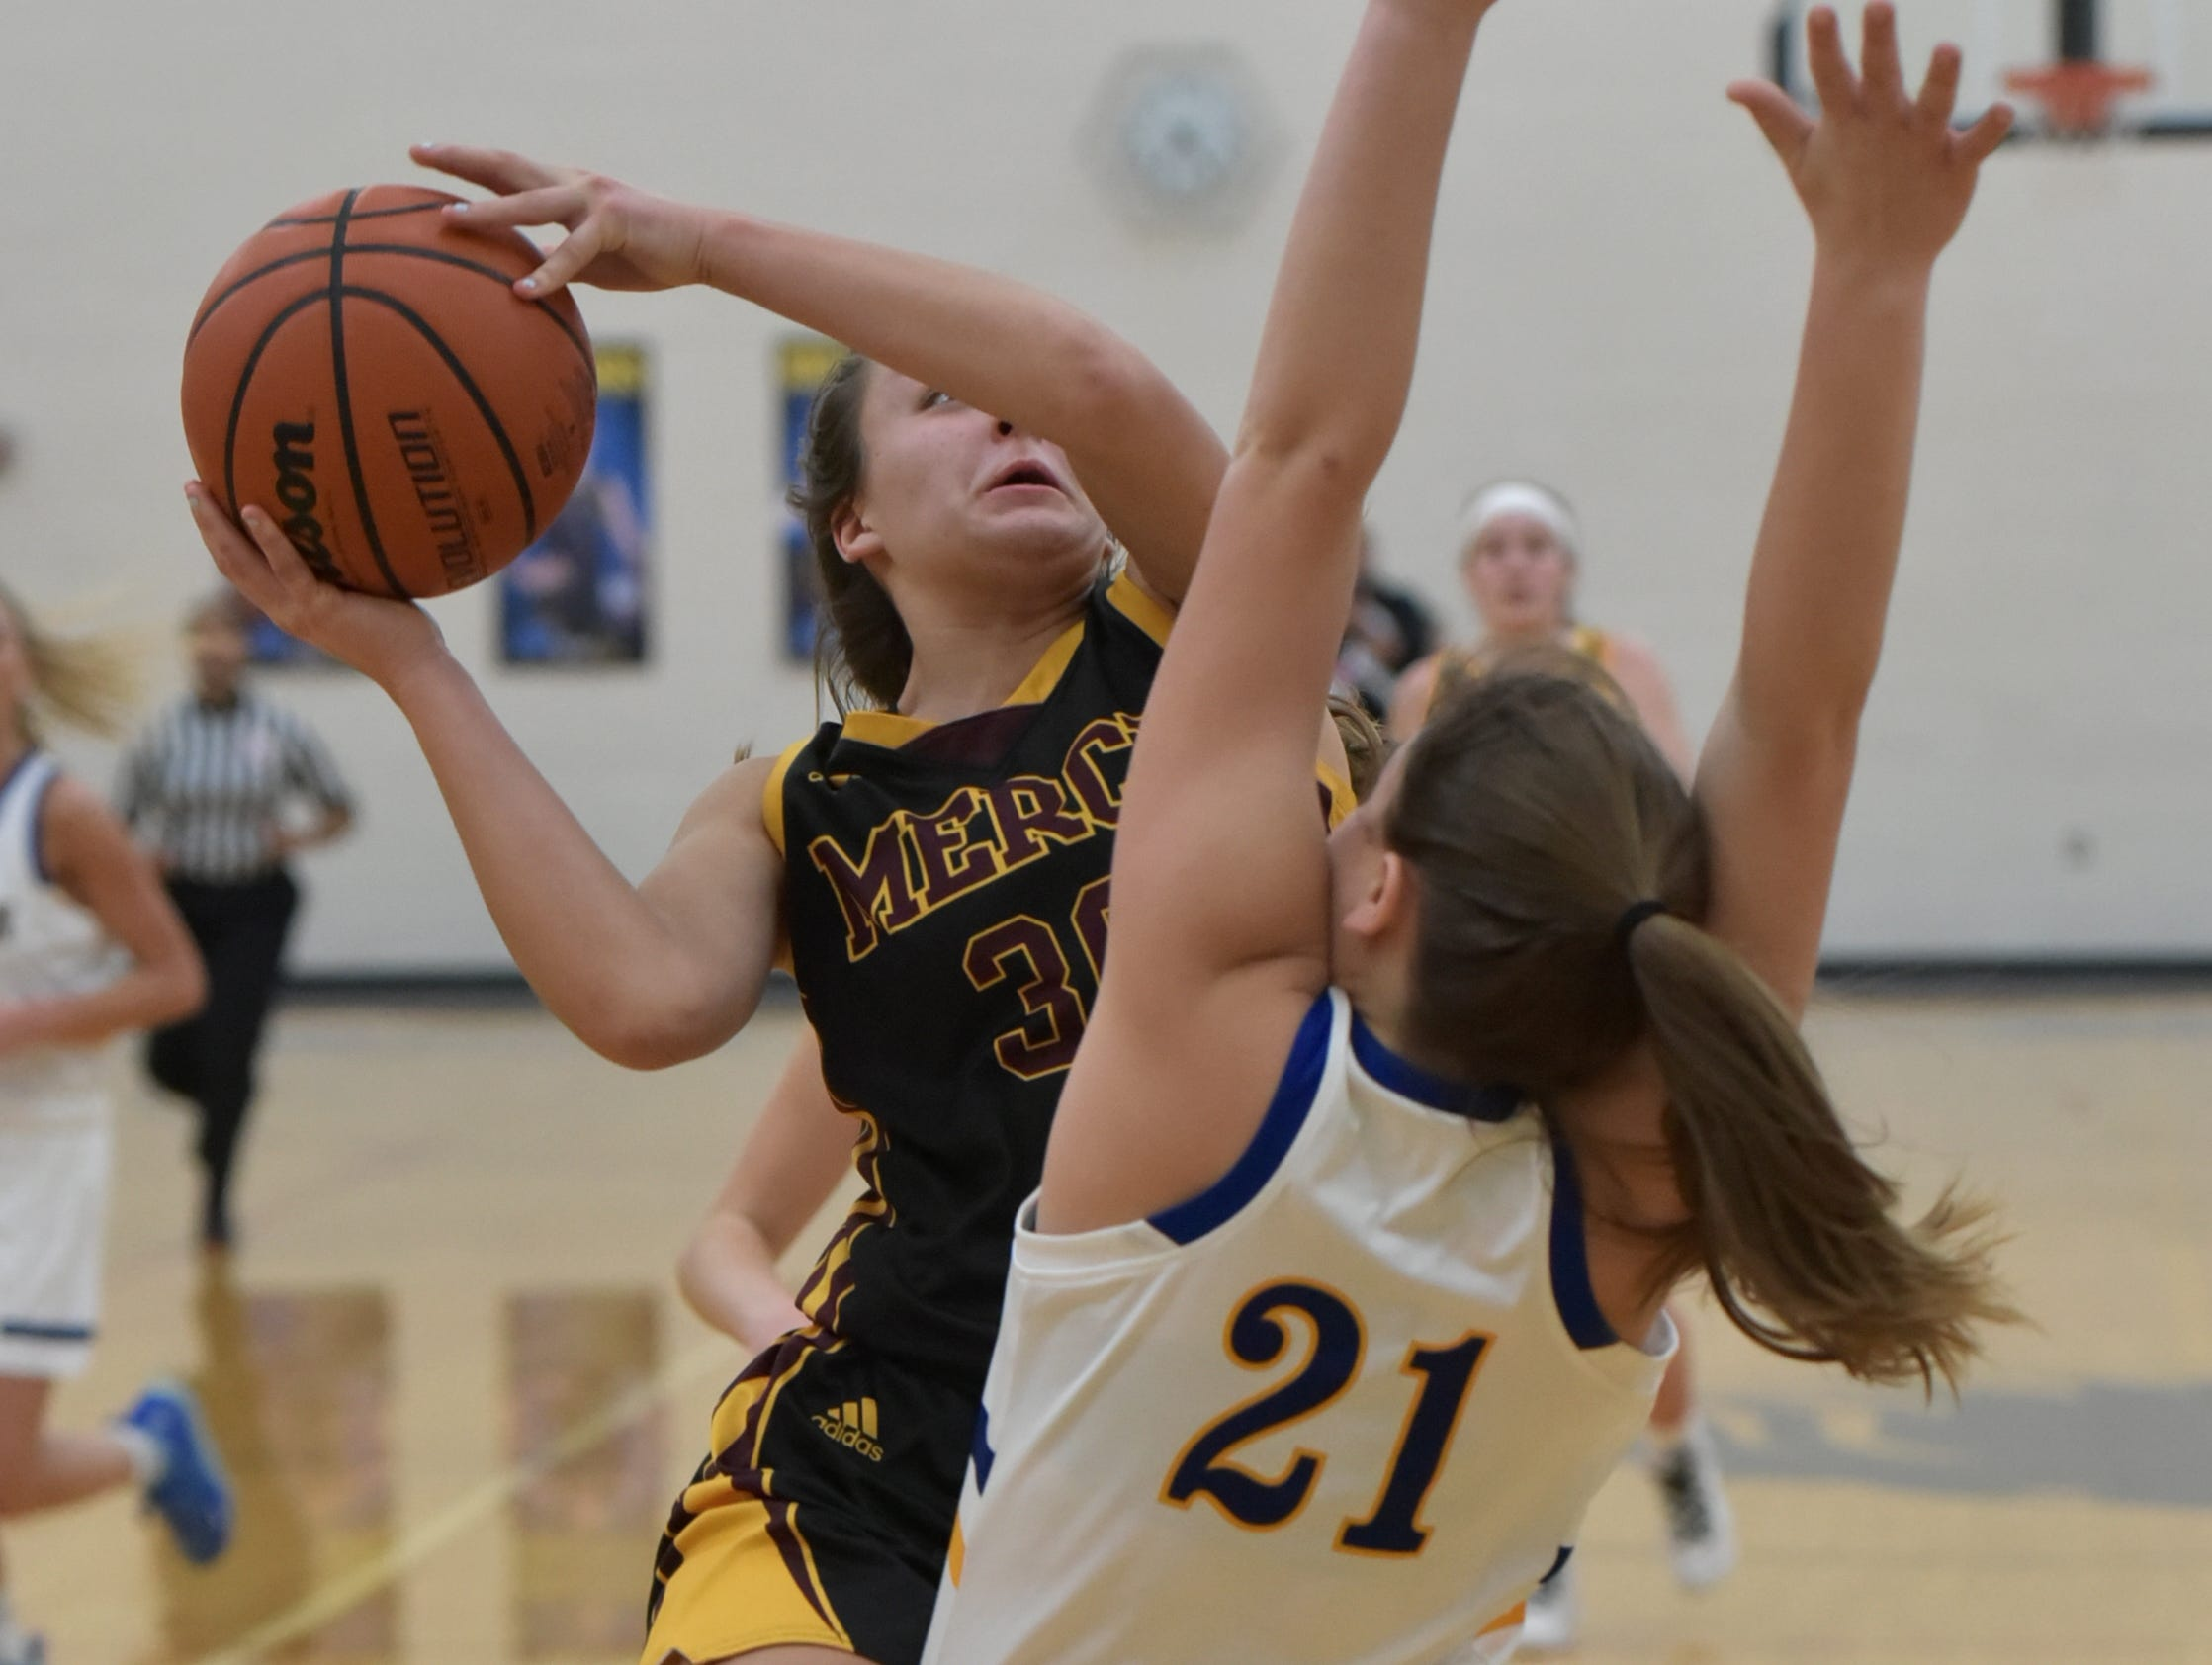 Mercy High's Jill Smith, left, puts up a shot against Marian High's Anna Herberholz during the teams' Jan. 19 match.